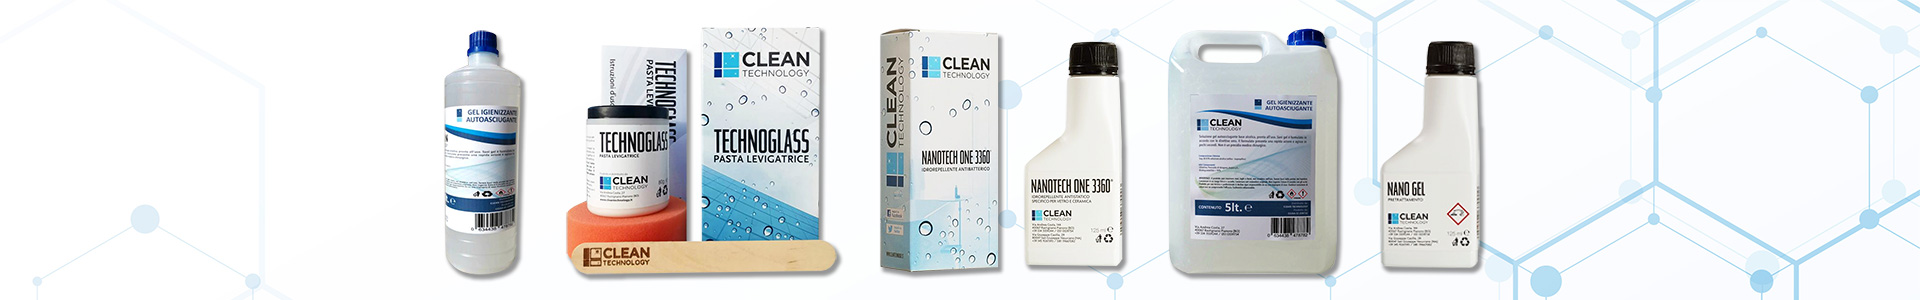 Slide Dealers - Clean Technology products